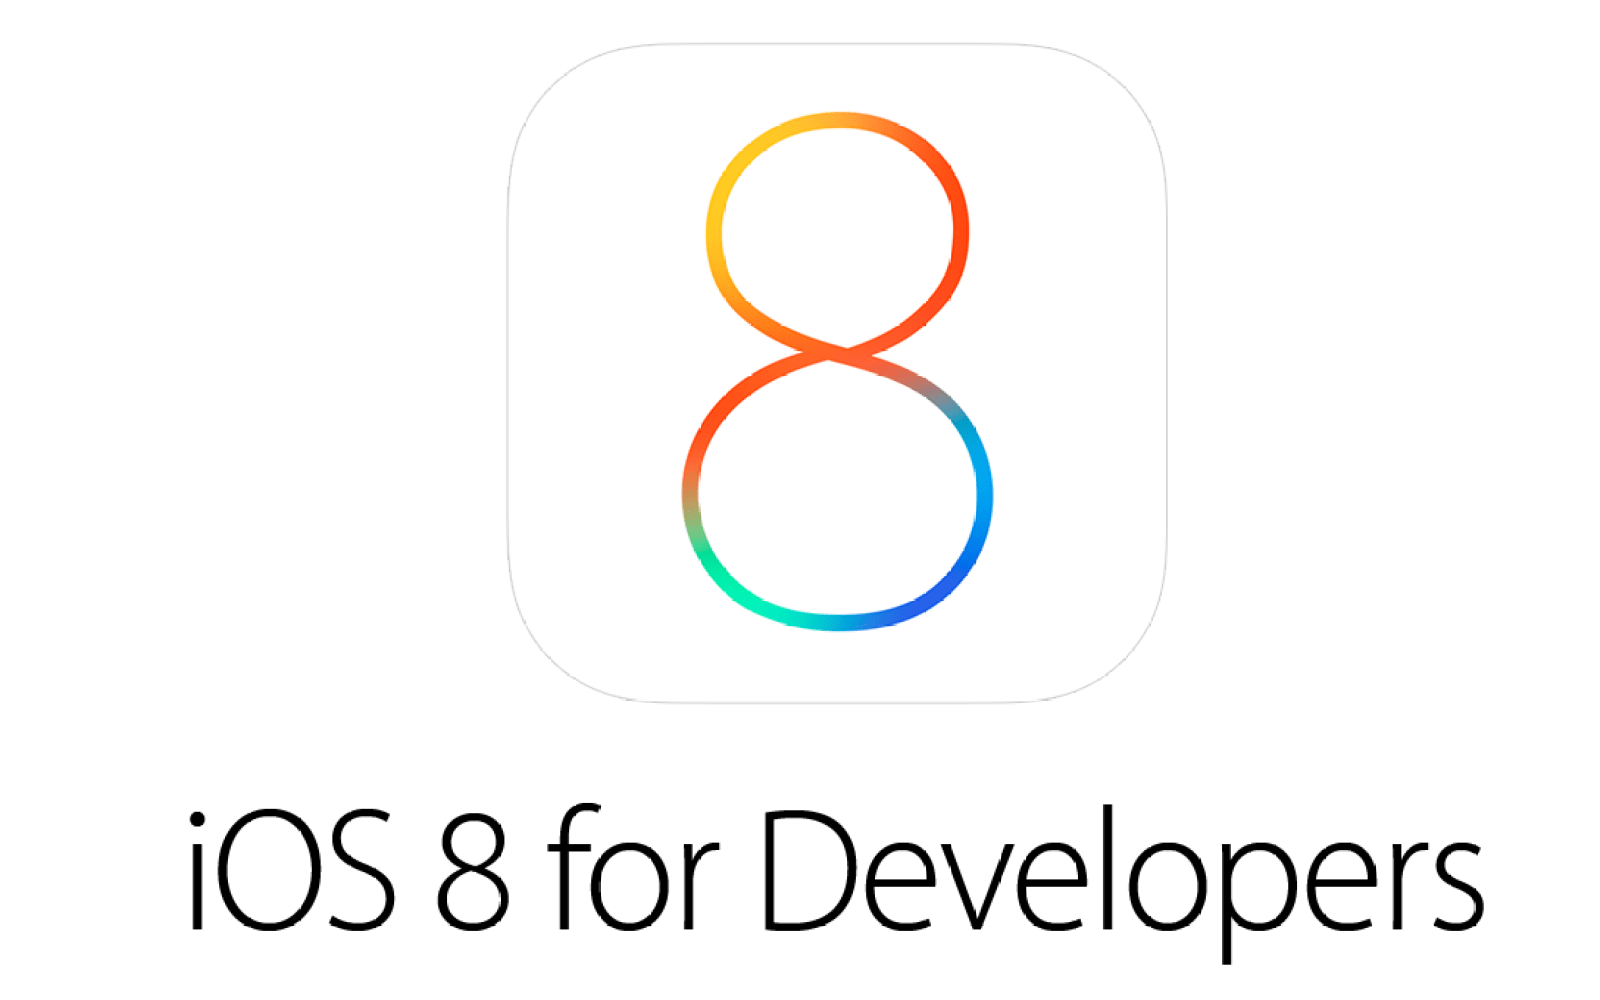 Apple sets developer rules for HealthKit, HomeKit, TestFlight, and Extensions ahead of iOS 8 launch